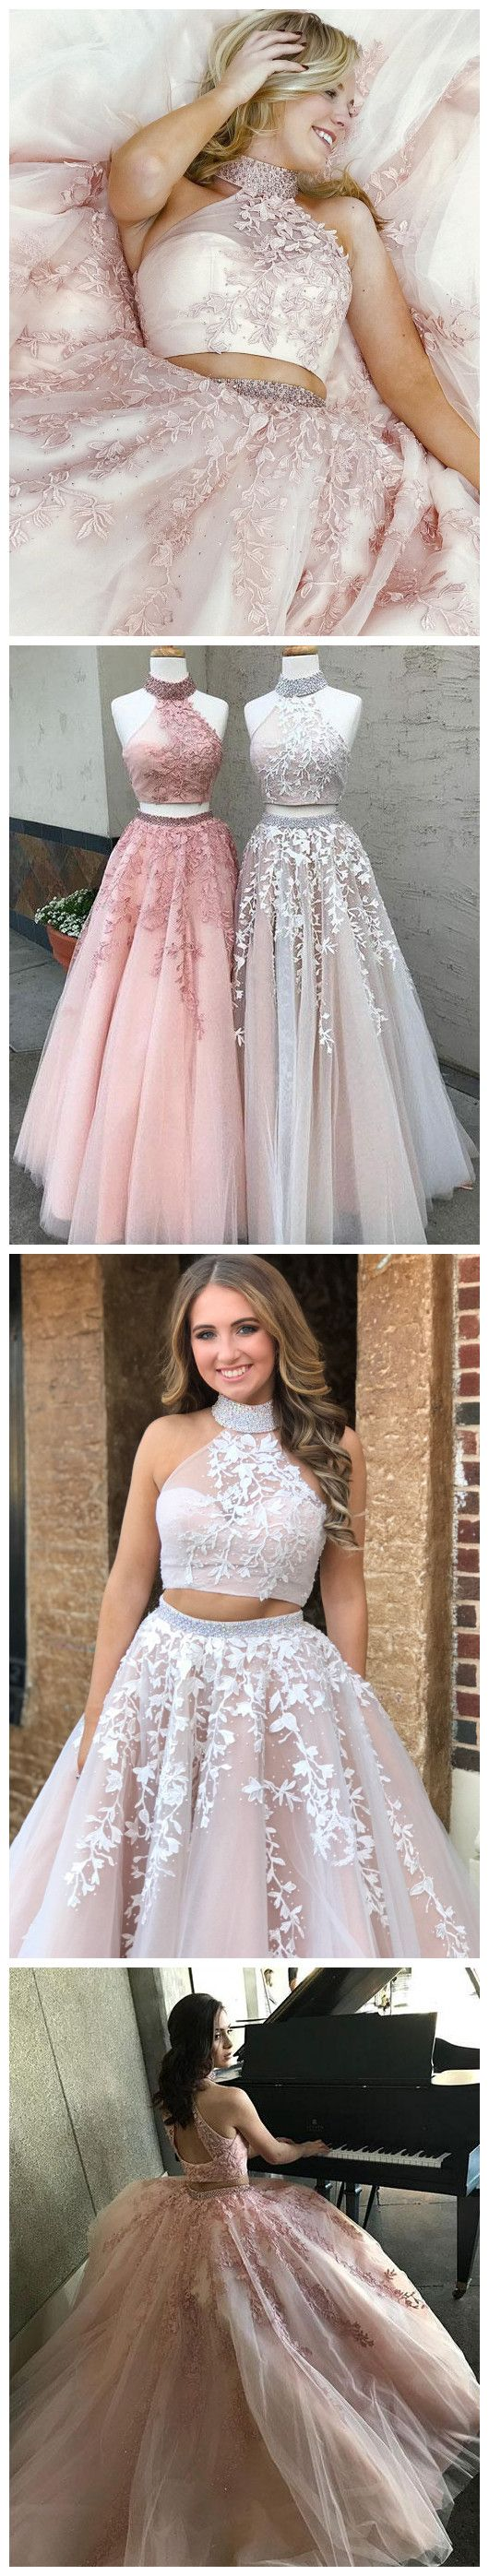 2018 Prom Dress prom dresses long,prom dresses modest,prom dresses high neck,prom dresses pink,prom dresses cheap,prom dresses applique,beautiful prom dresses,prom dresses 2018,prom dresses elegant,prom dresses a line #amyprom #longpromdress #fashion #prom #party #formal